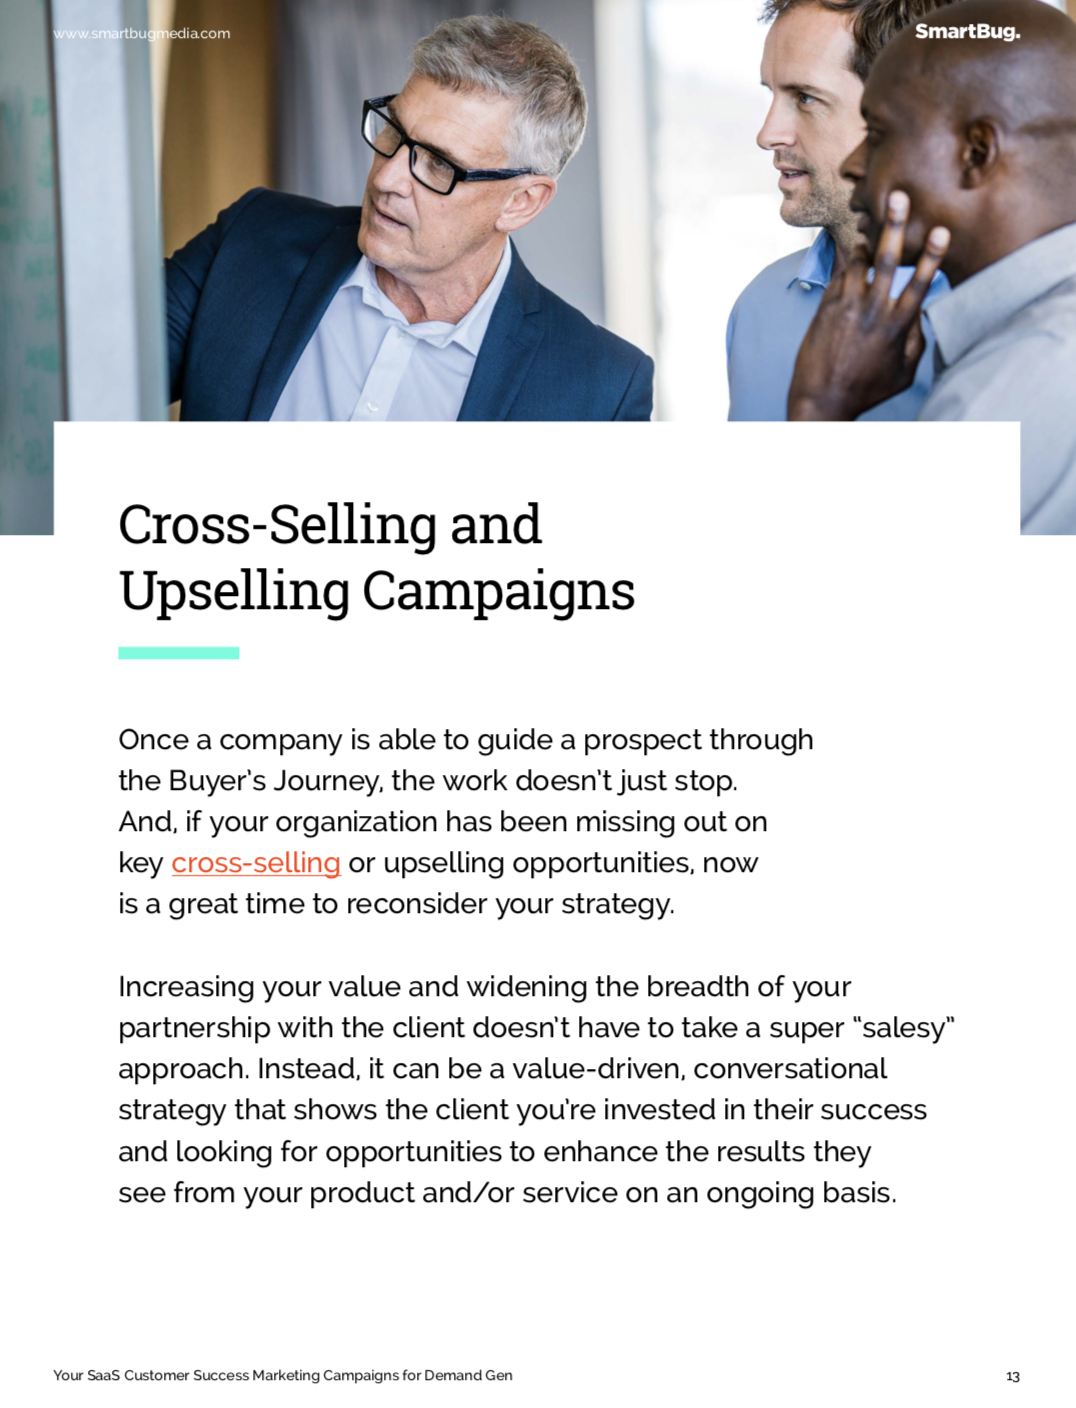 cross-selling and upselling campaigns